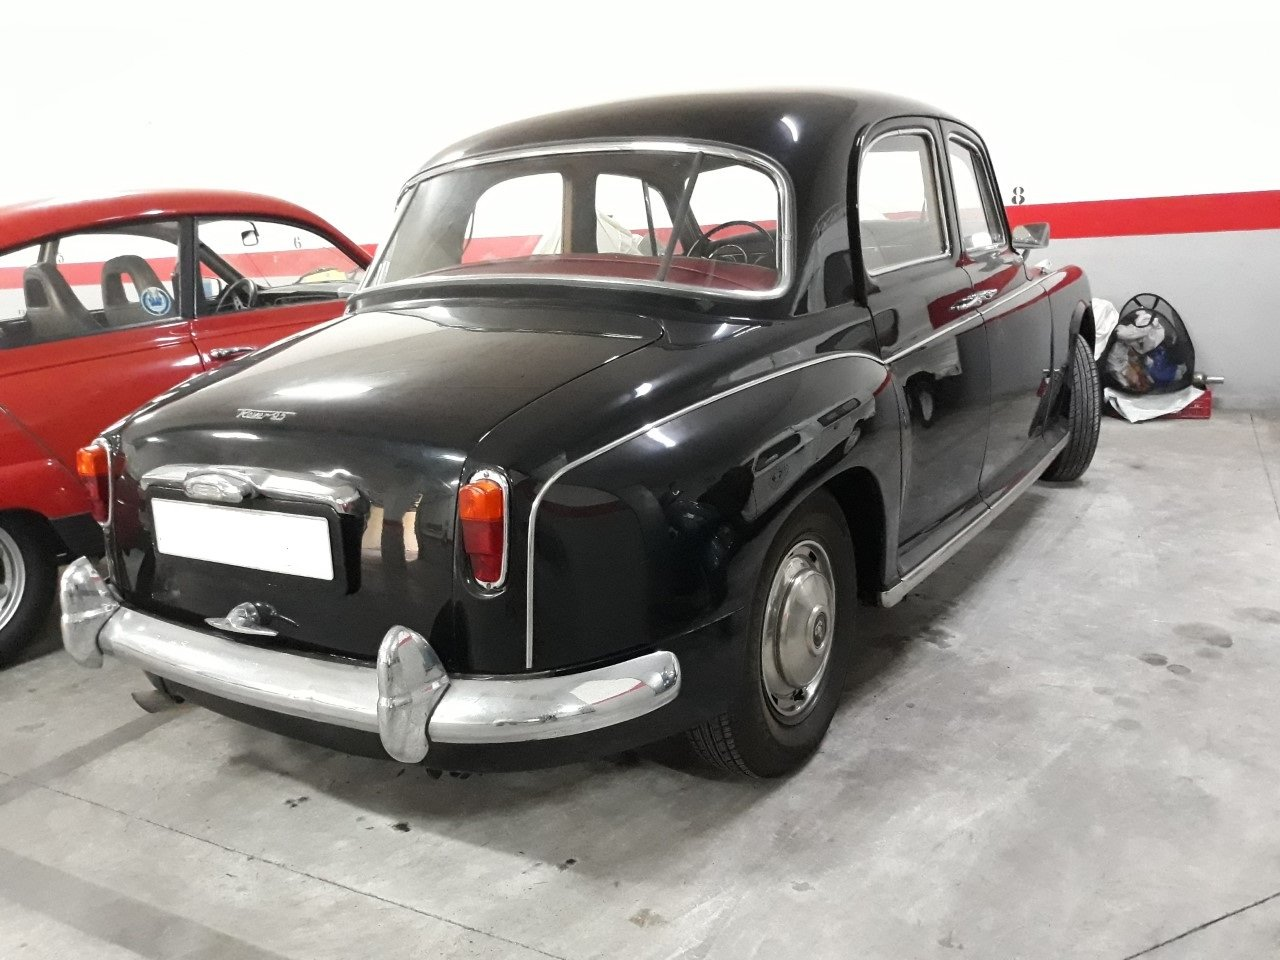 1962 LHD - Rover P4 95 - 2.6L - Only 50.000km. For Sale (picture 3 of 6)